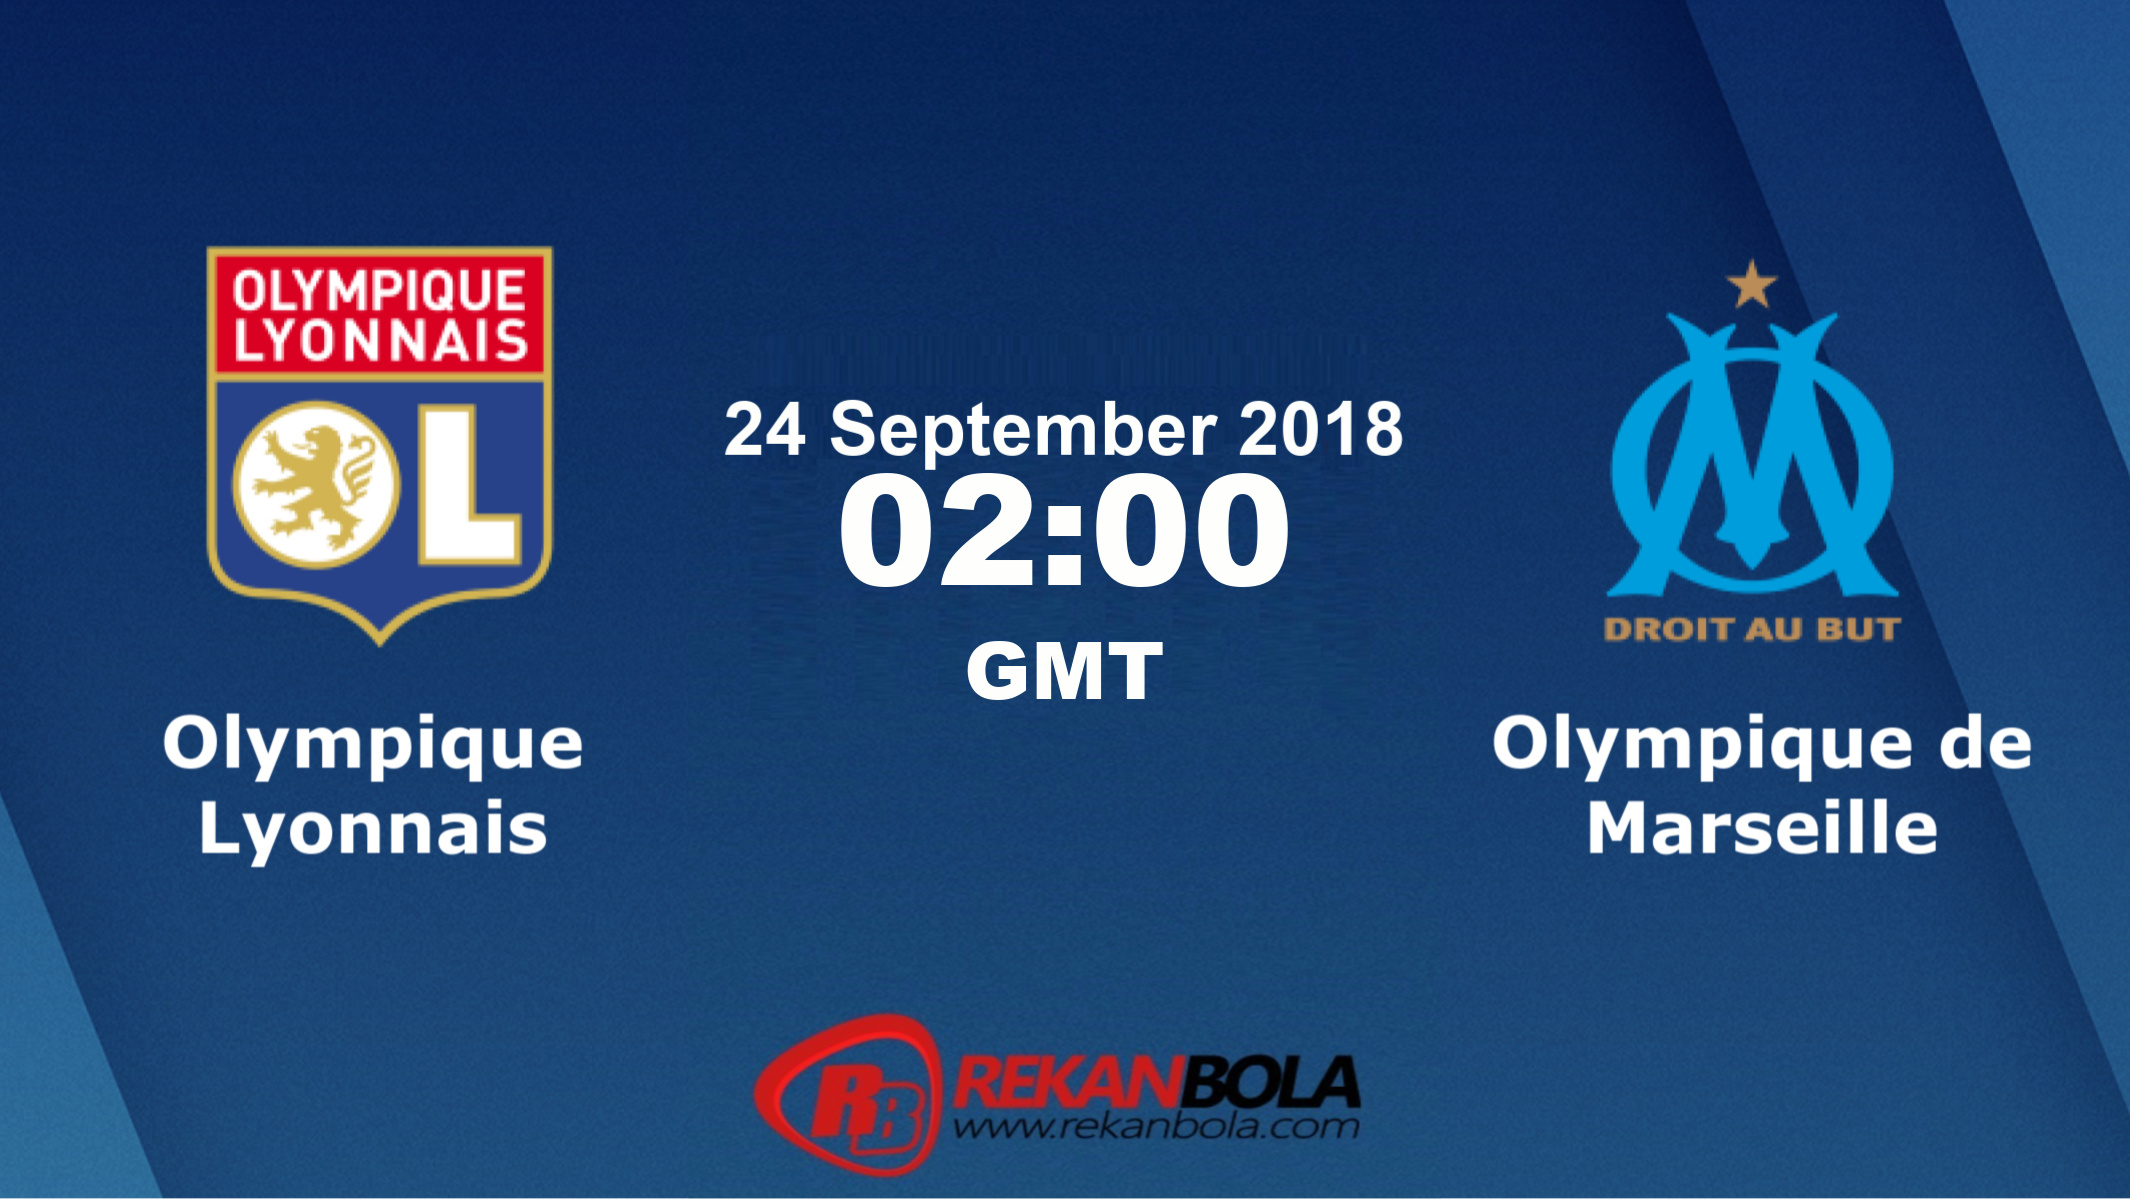 Nonton Siaran Live Streaming Lyon Vs Marseille 24 September 2018